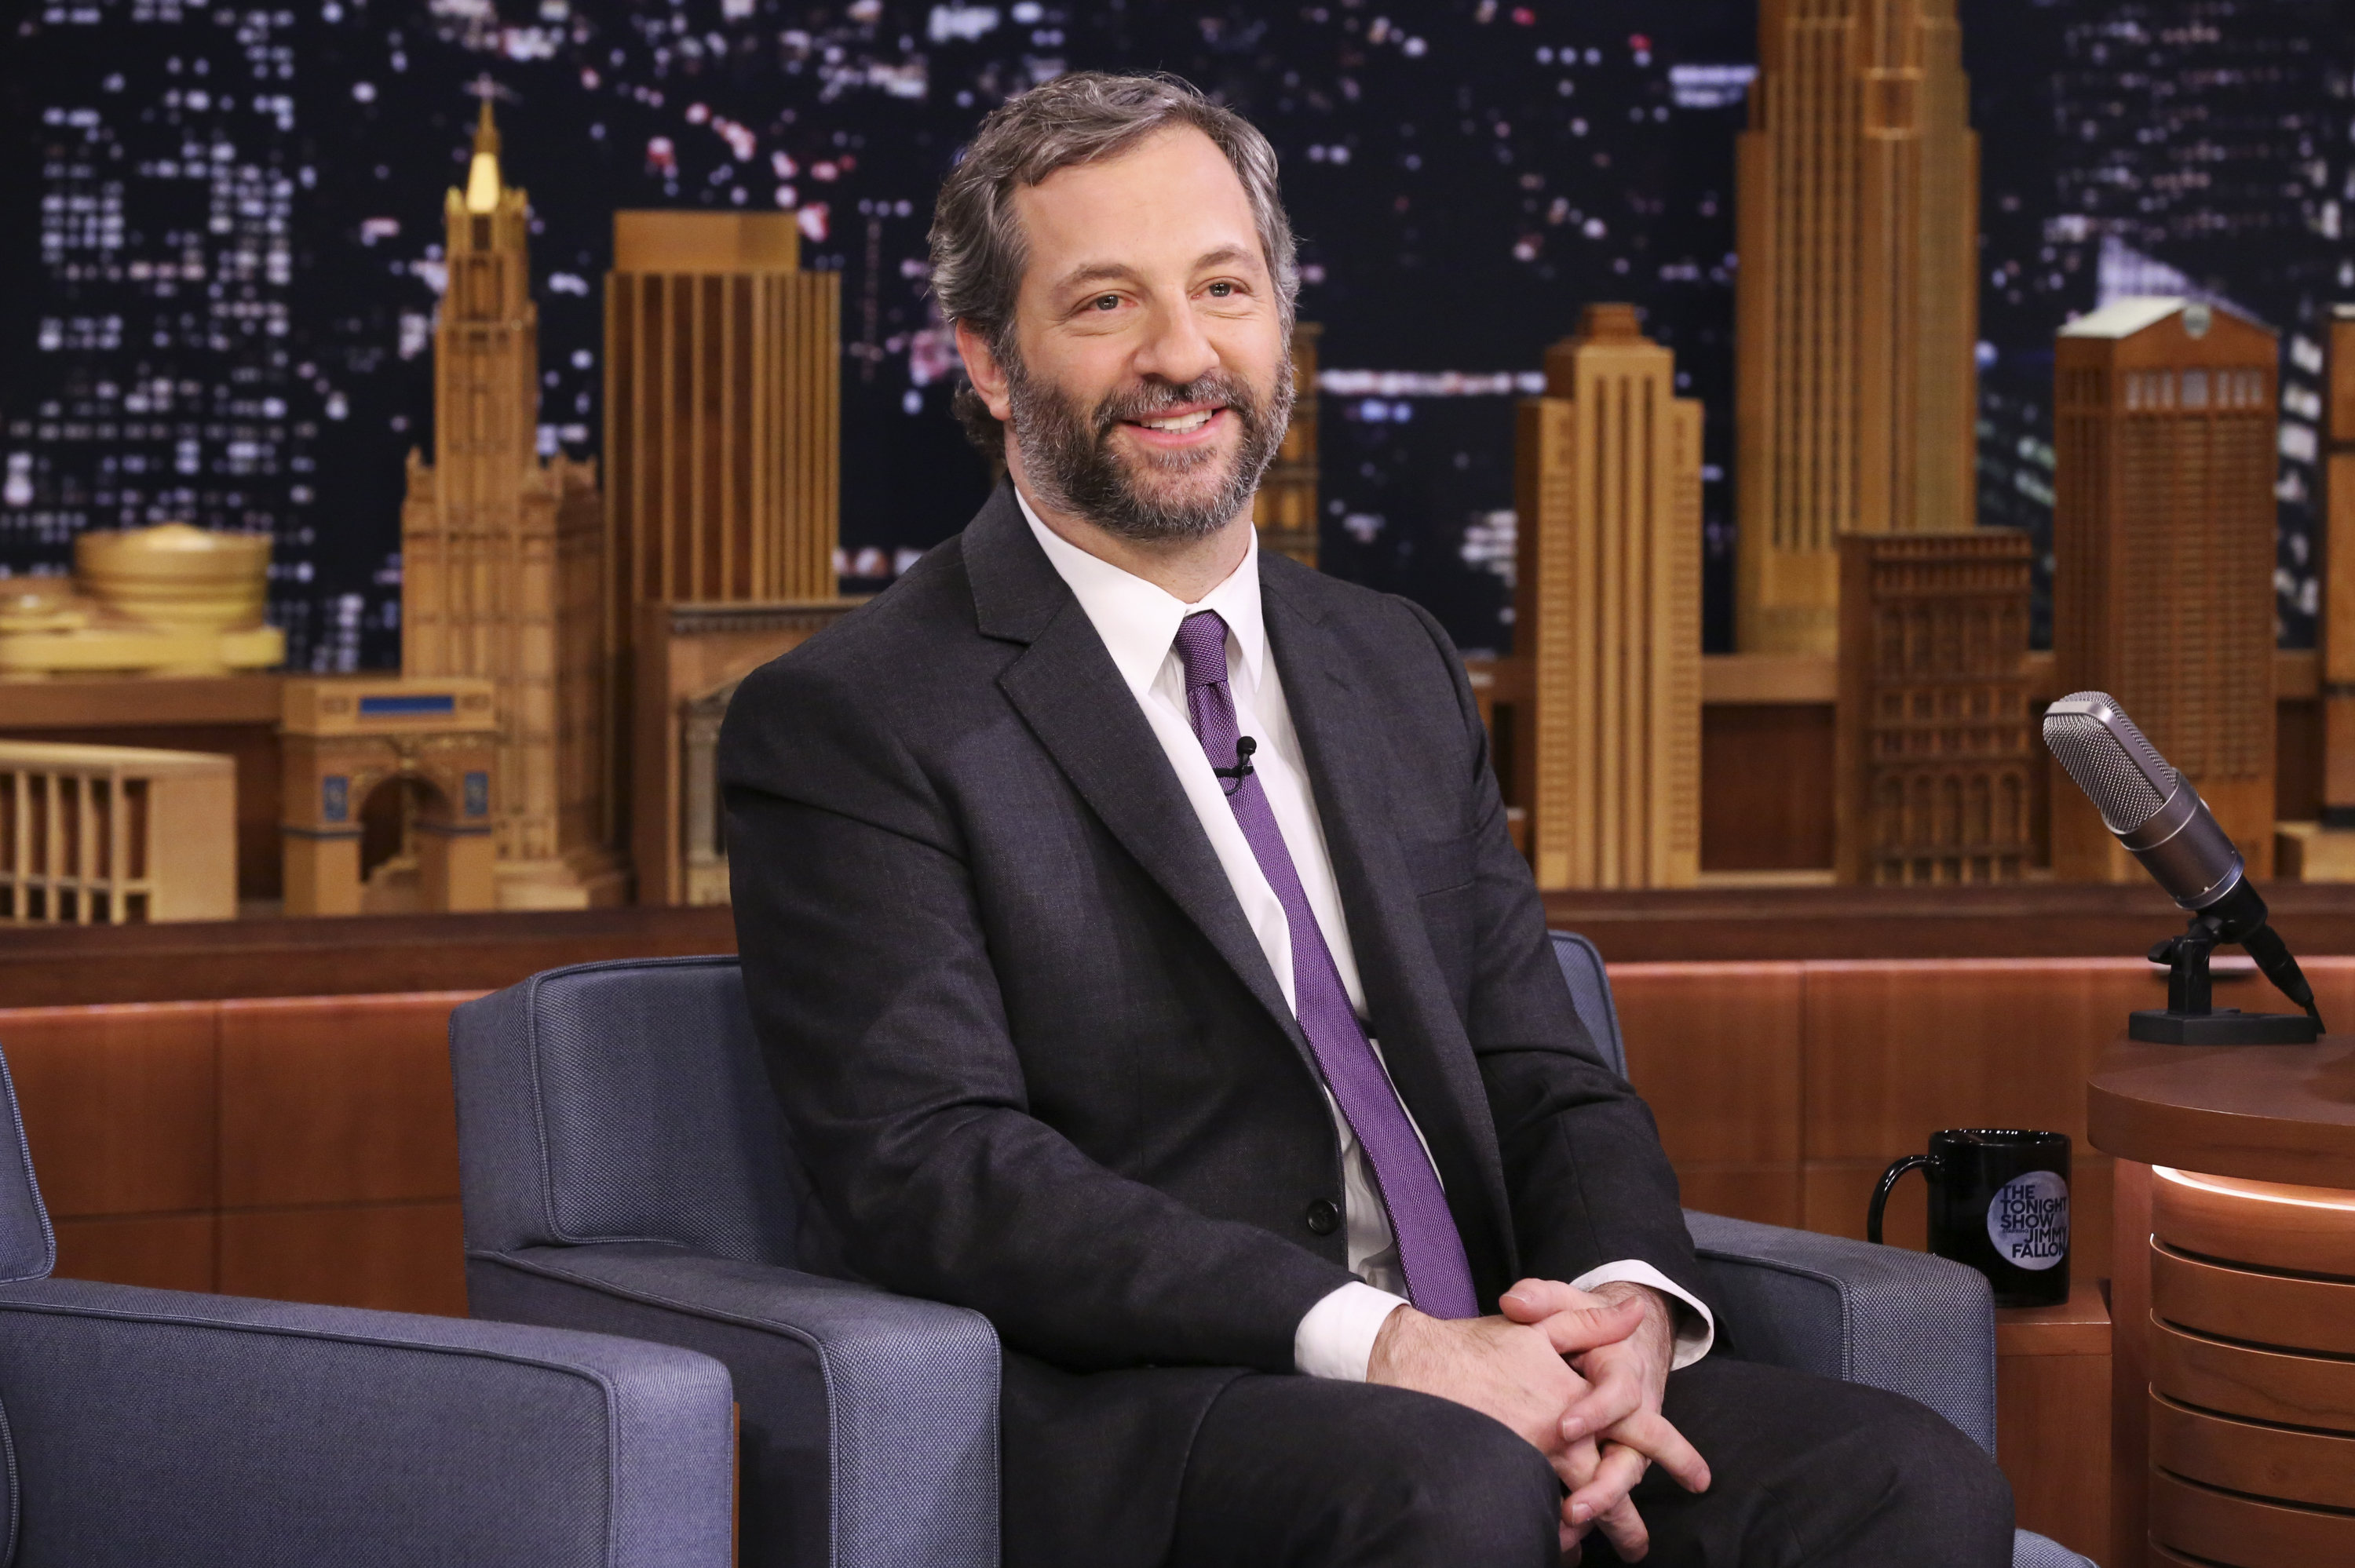 THE TONIGHT SHOW STARRING JIMMY FALLON -- Episode 0615 -- Pictured: Producer Judd Apatow during an interview on February 1, 2017 -- (Photo by: Andrew Lipovsky/NBC/NBCU Photo Bank via Getty Images)